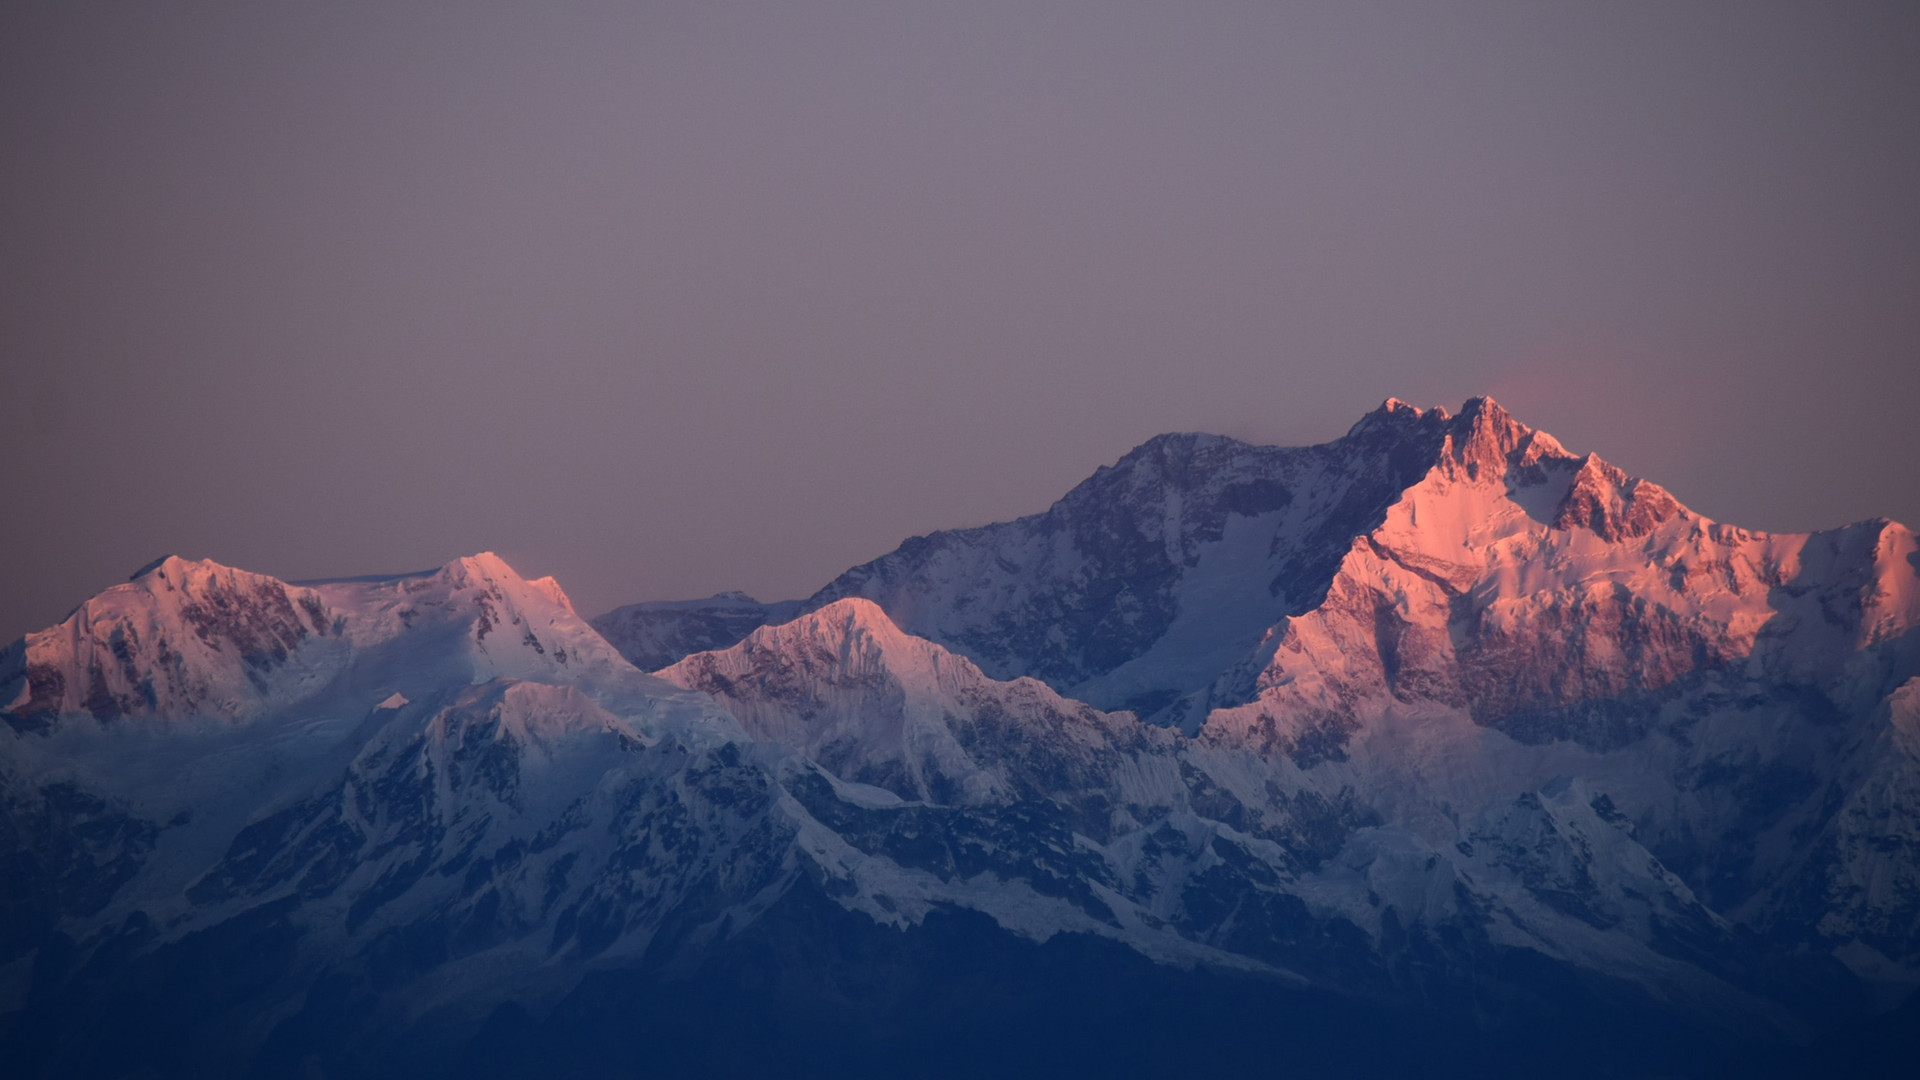 altitude-clouds-cold-933054 (1).jpg